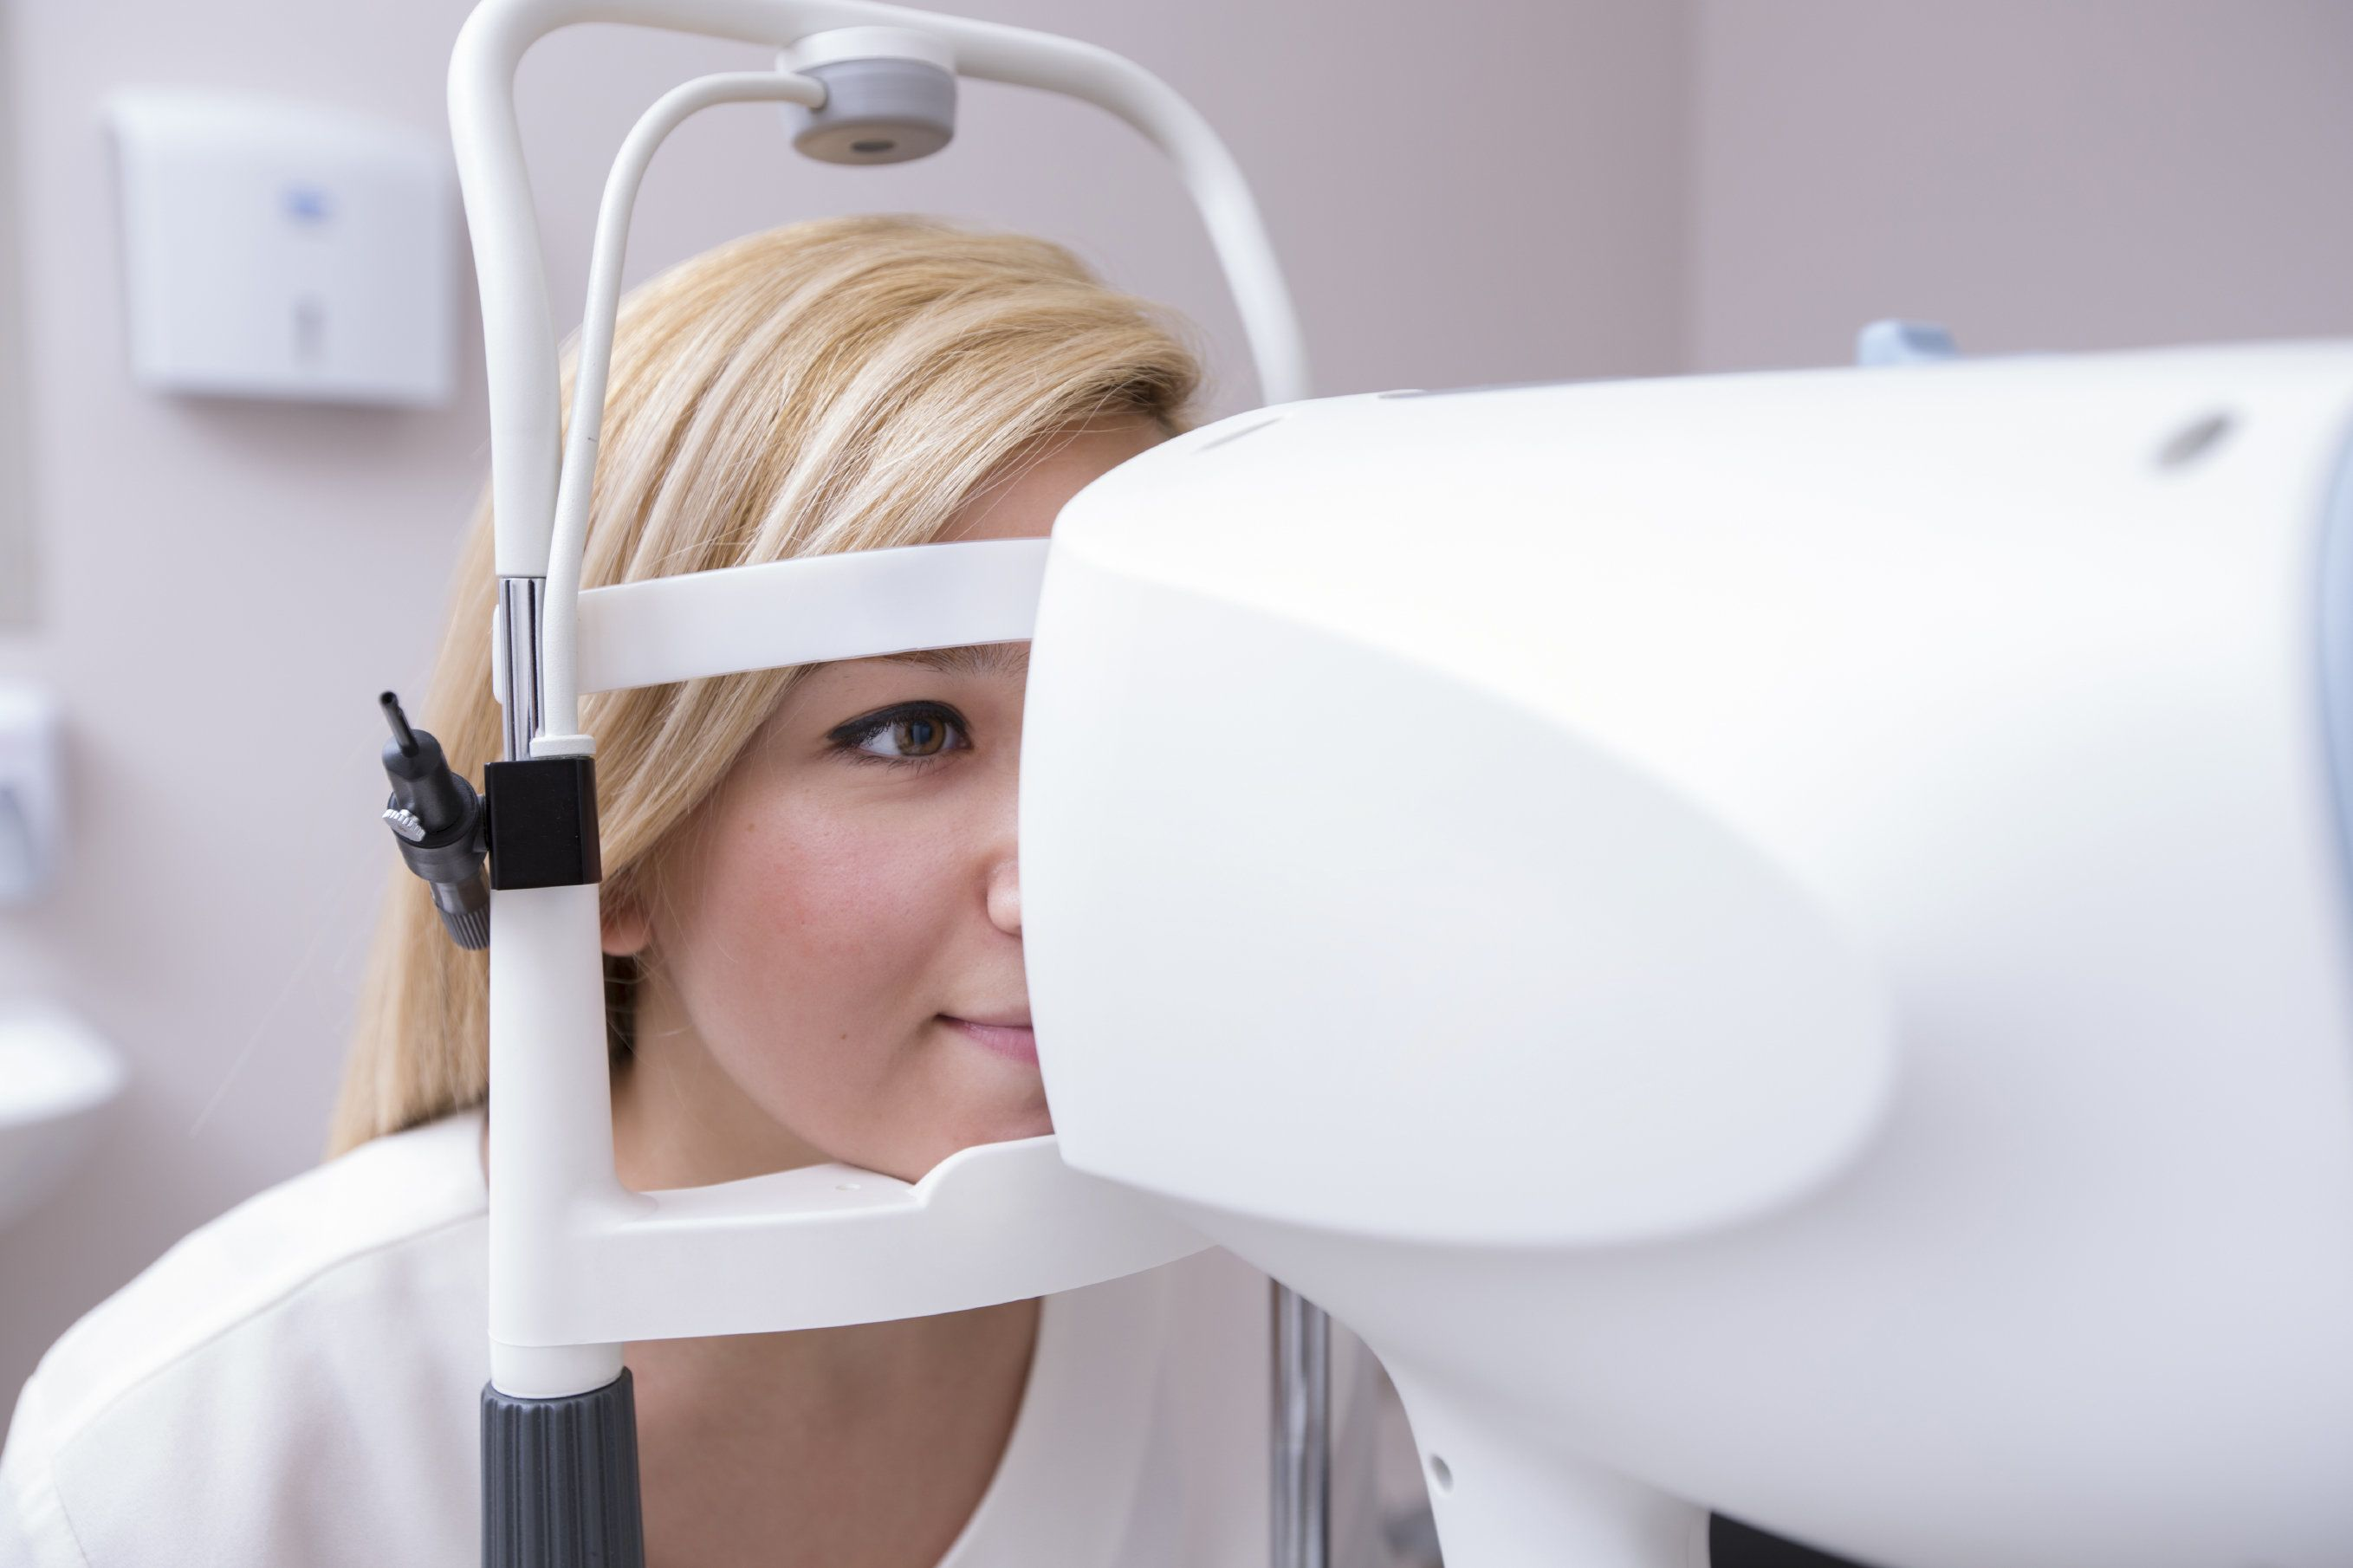 Patient at an eye exam